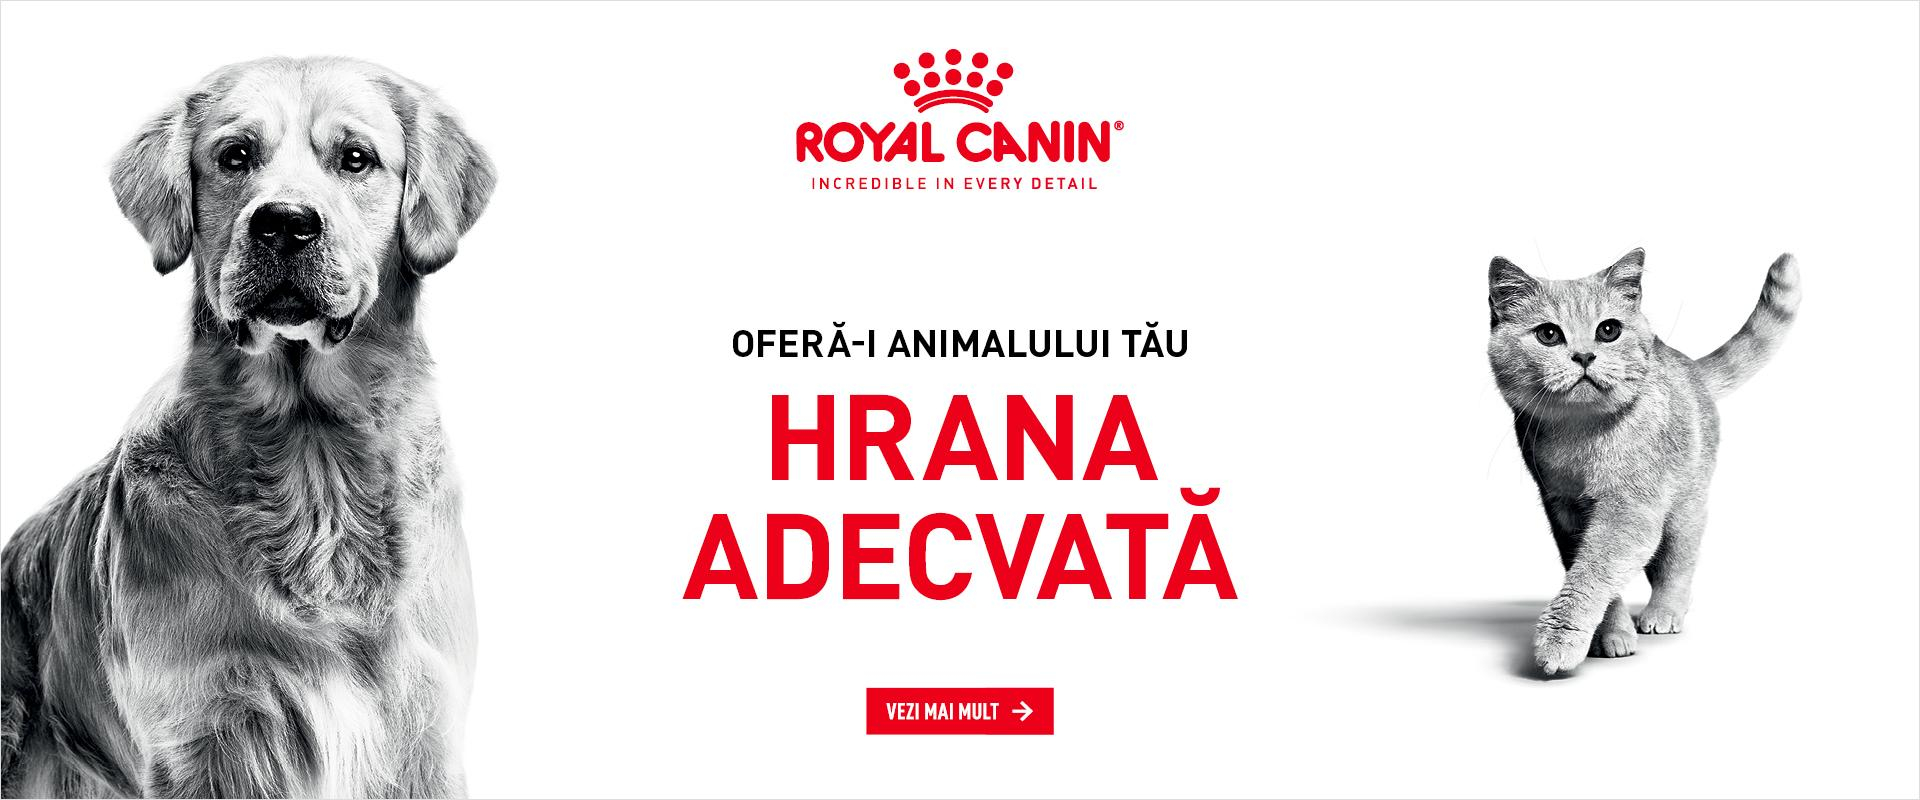 Royal Canin 1